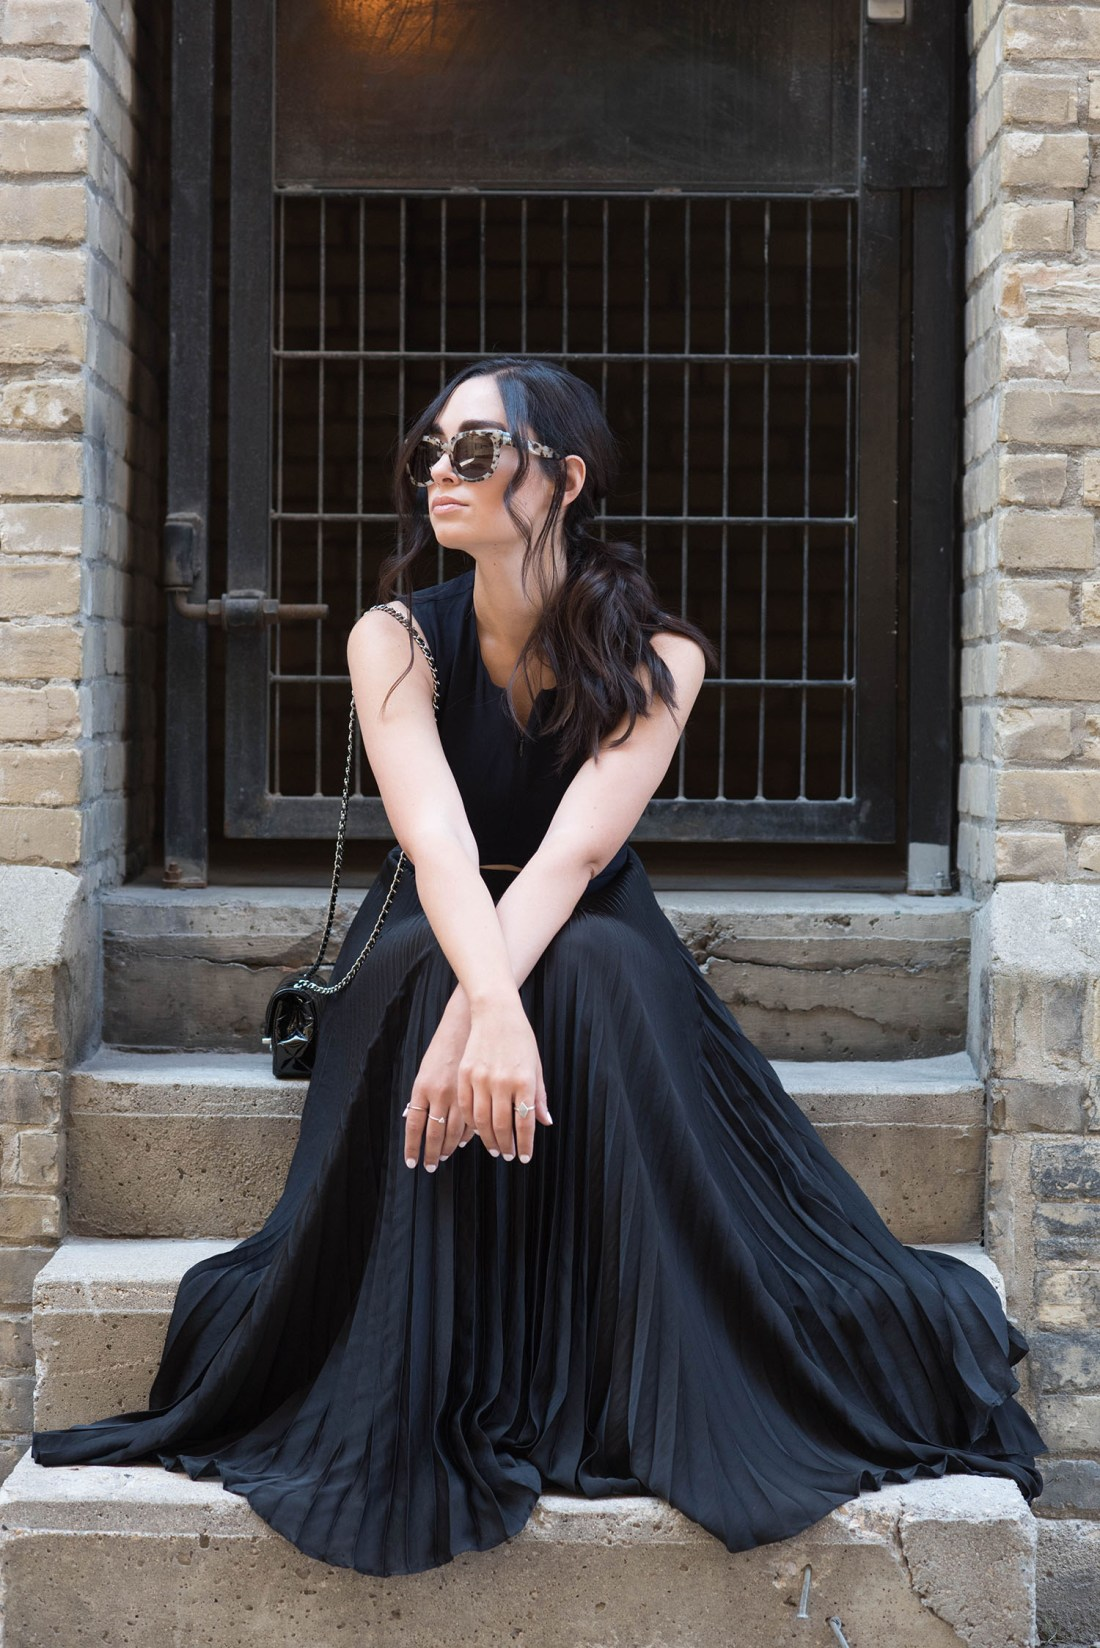 Winnipeg fashion blogger Cee Fardoe of Coco & Vera wears an ALC gown and a ponytail styled by Fran Rizzutto, while carrying a Chanel extra mini handbag